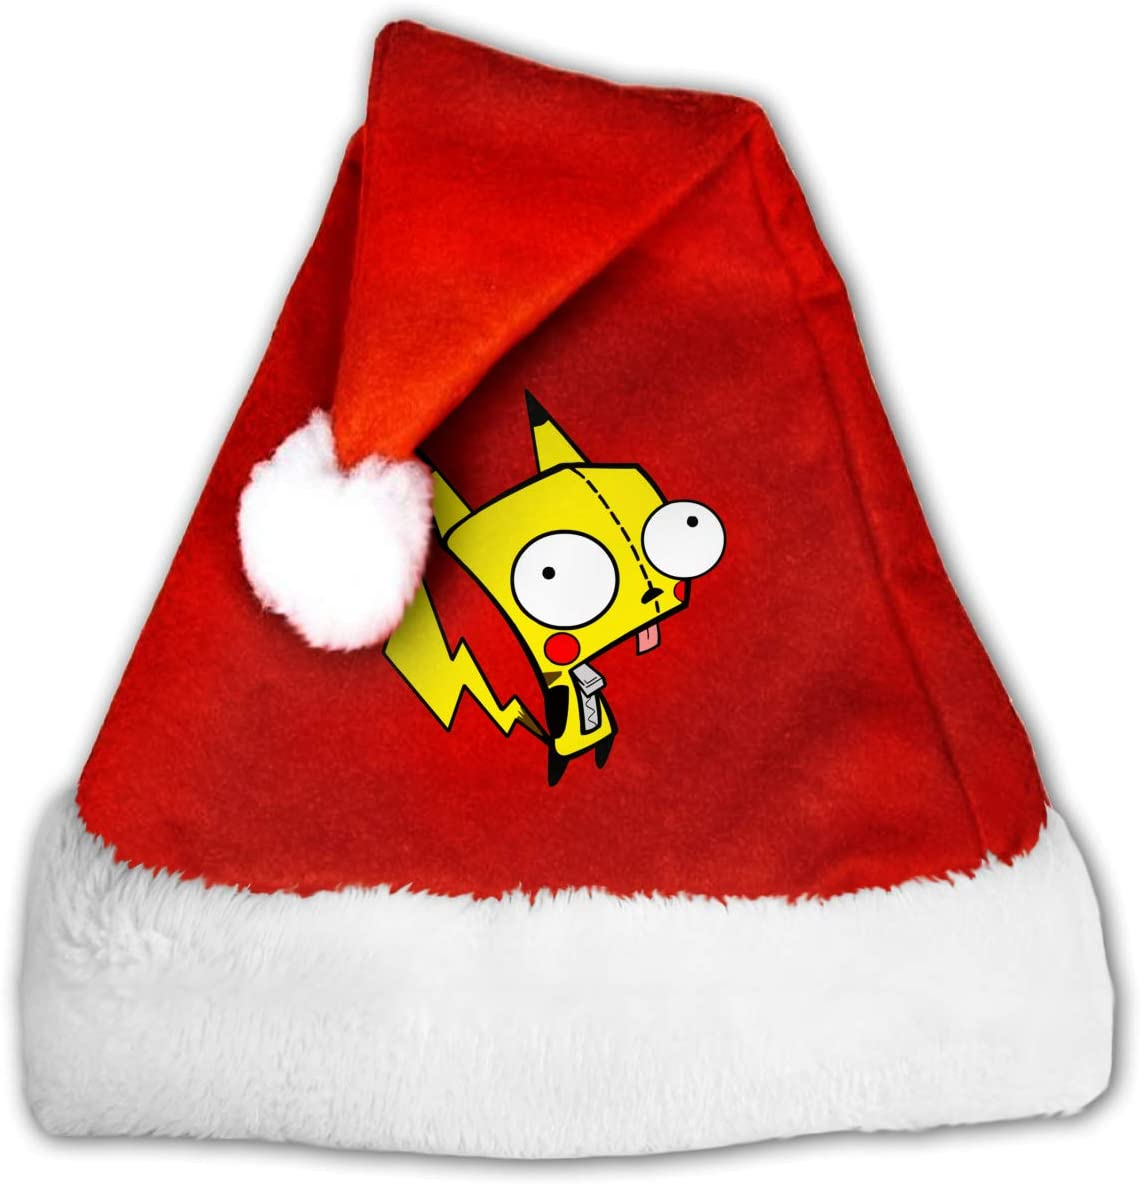 Adult Kid's Invader Zim Christmas Hats Red Plush Holiday Party Cap